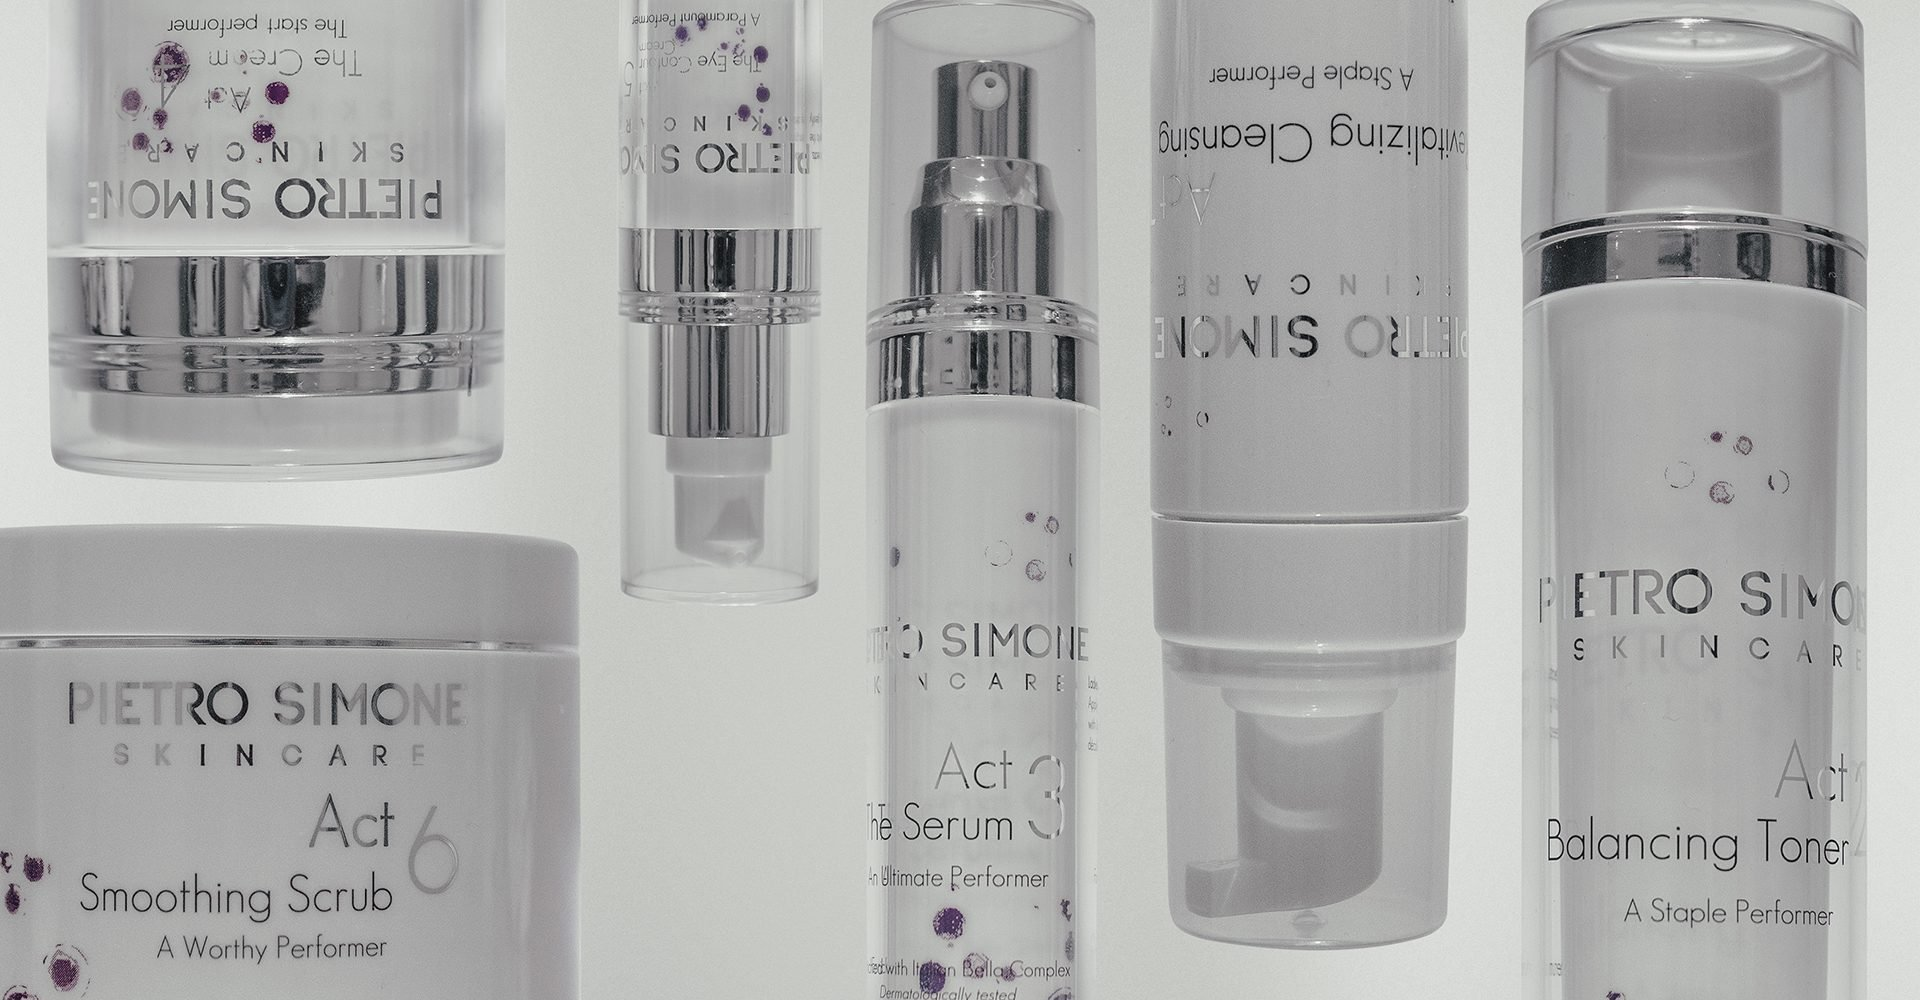 Pietro Simone Brings His New Skincare Range And Coveted Facial Technique To The US